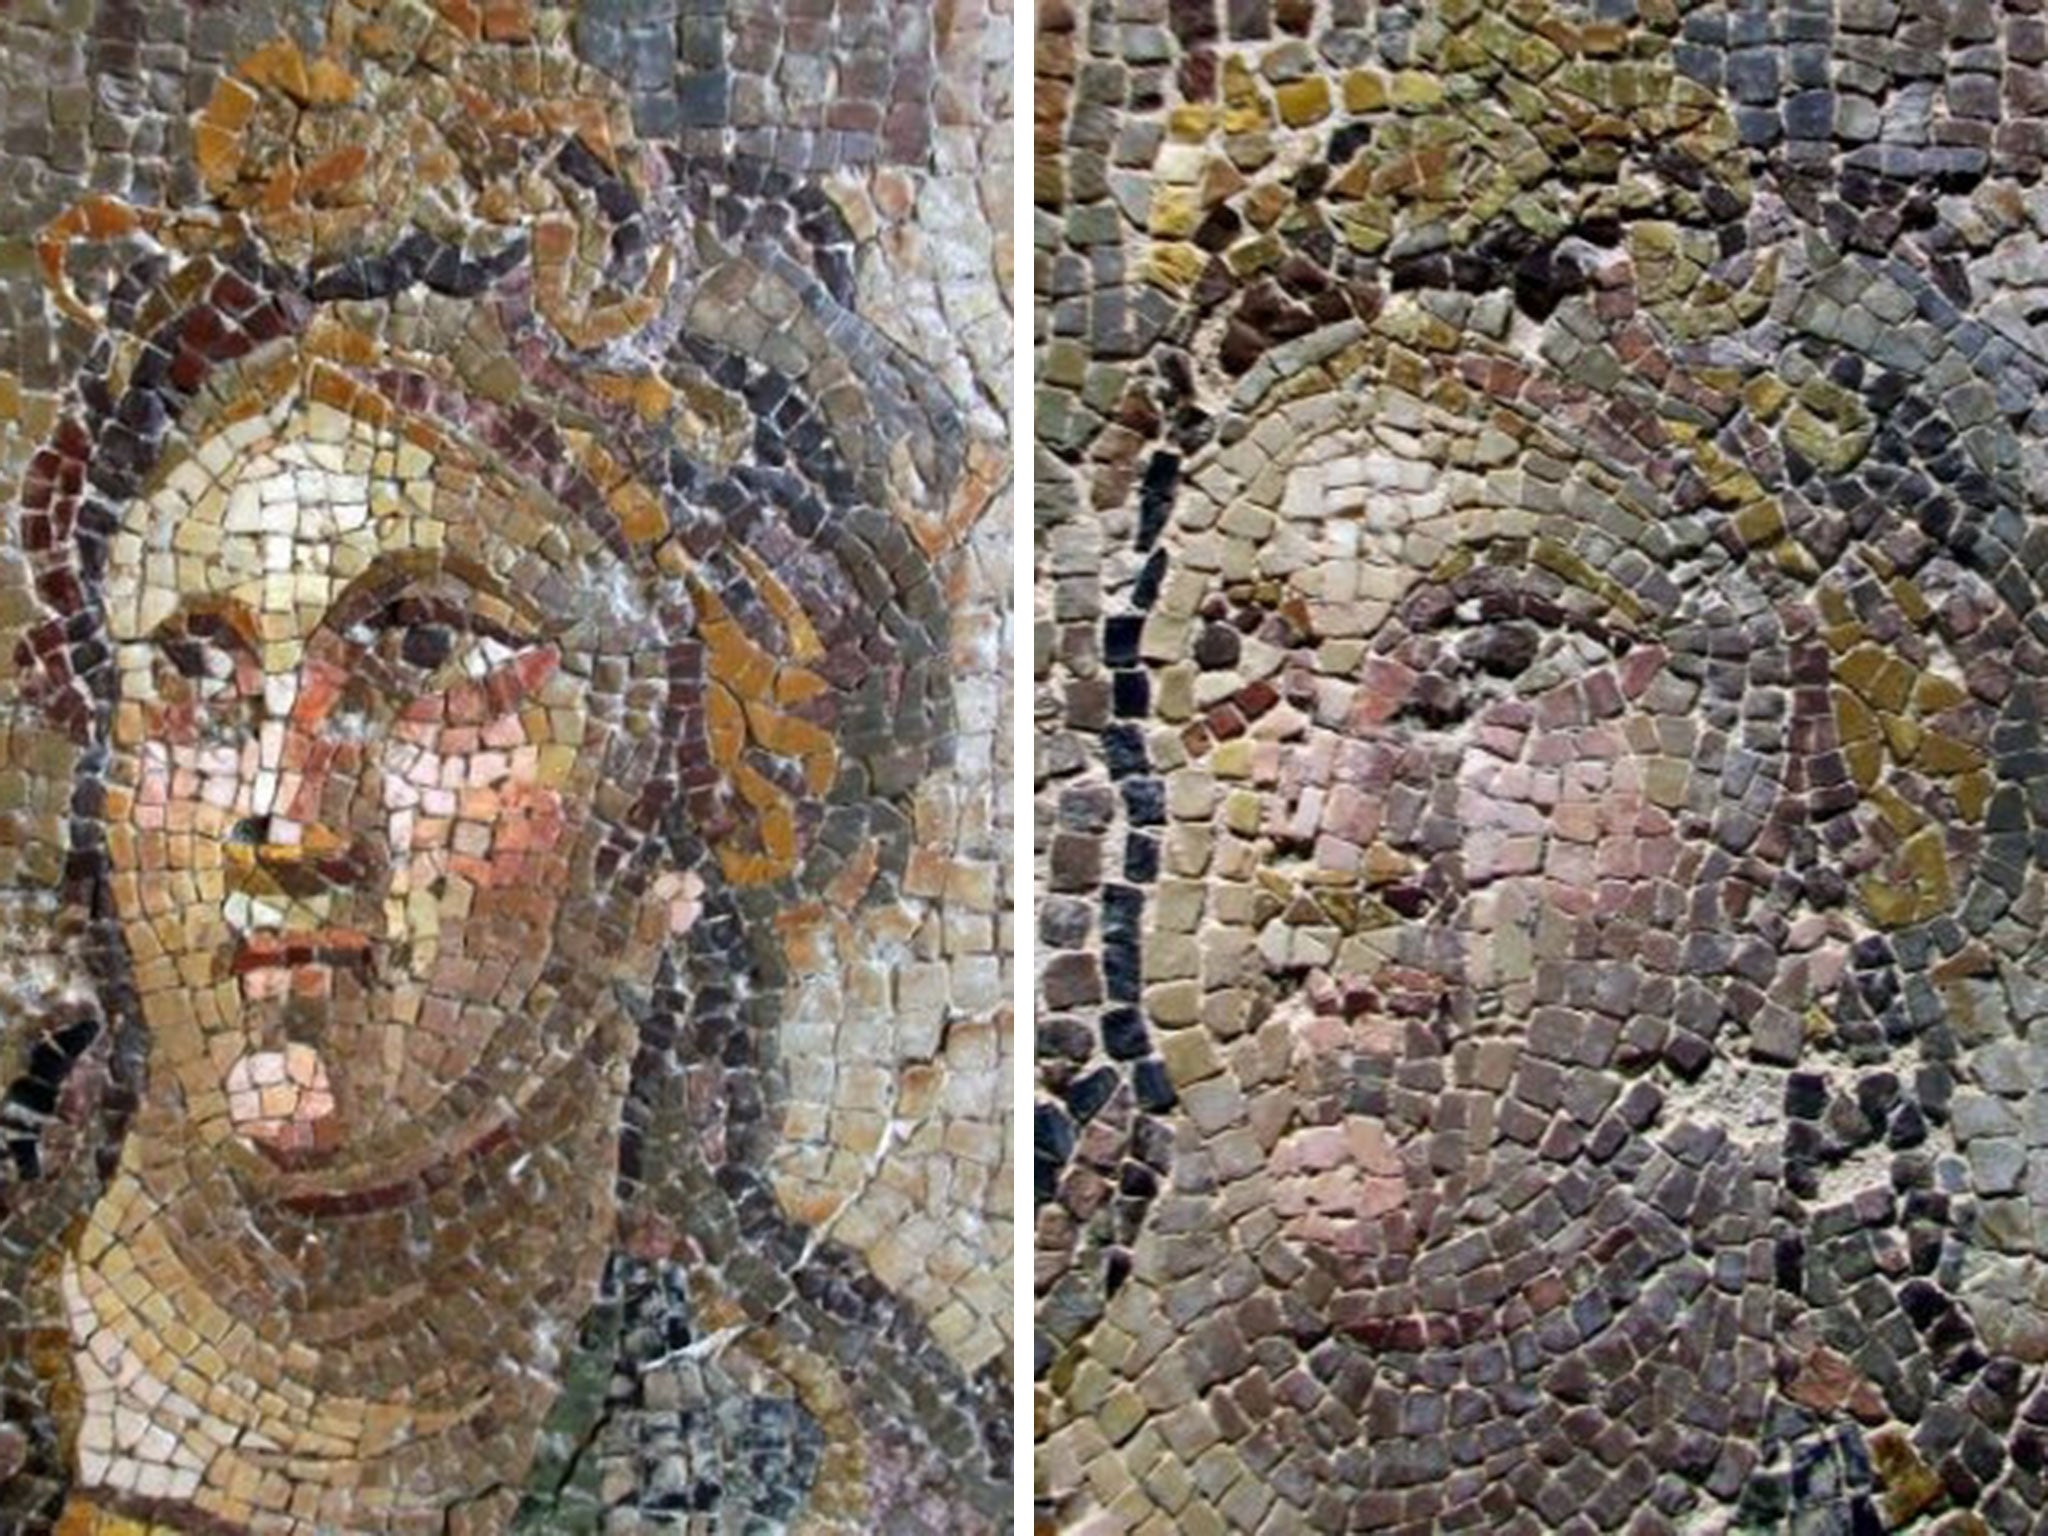 Ancient Roman mosaics ruined in botched restoration job